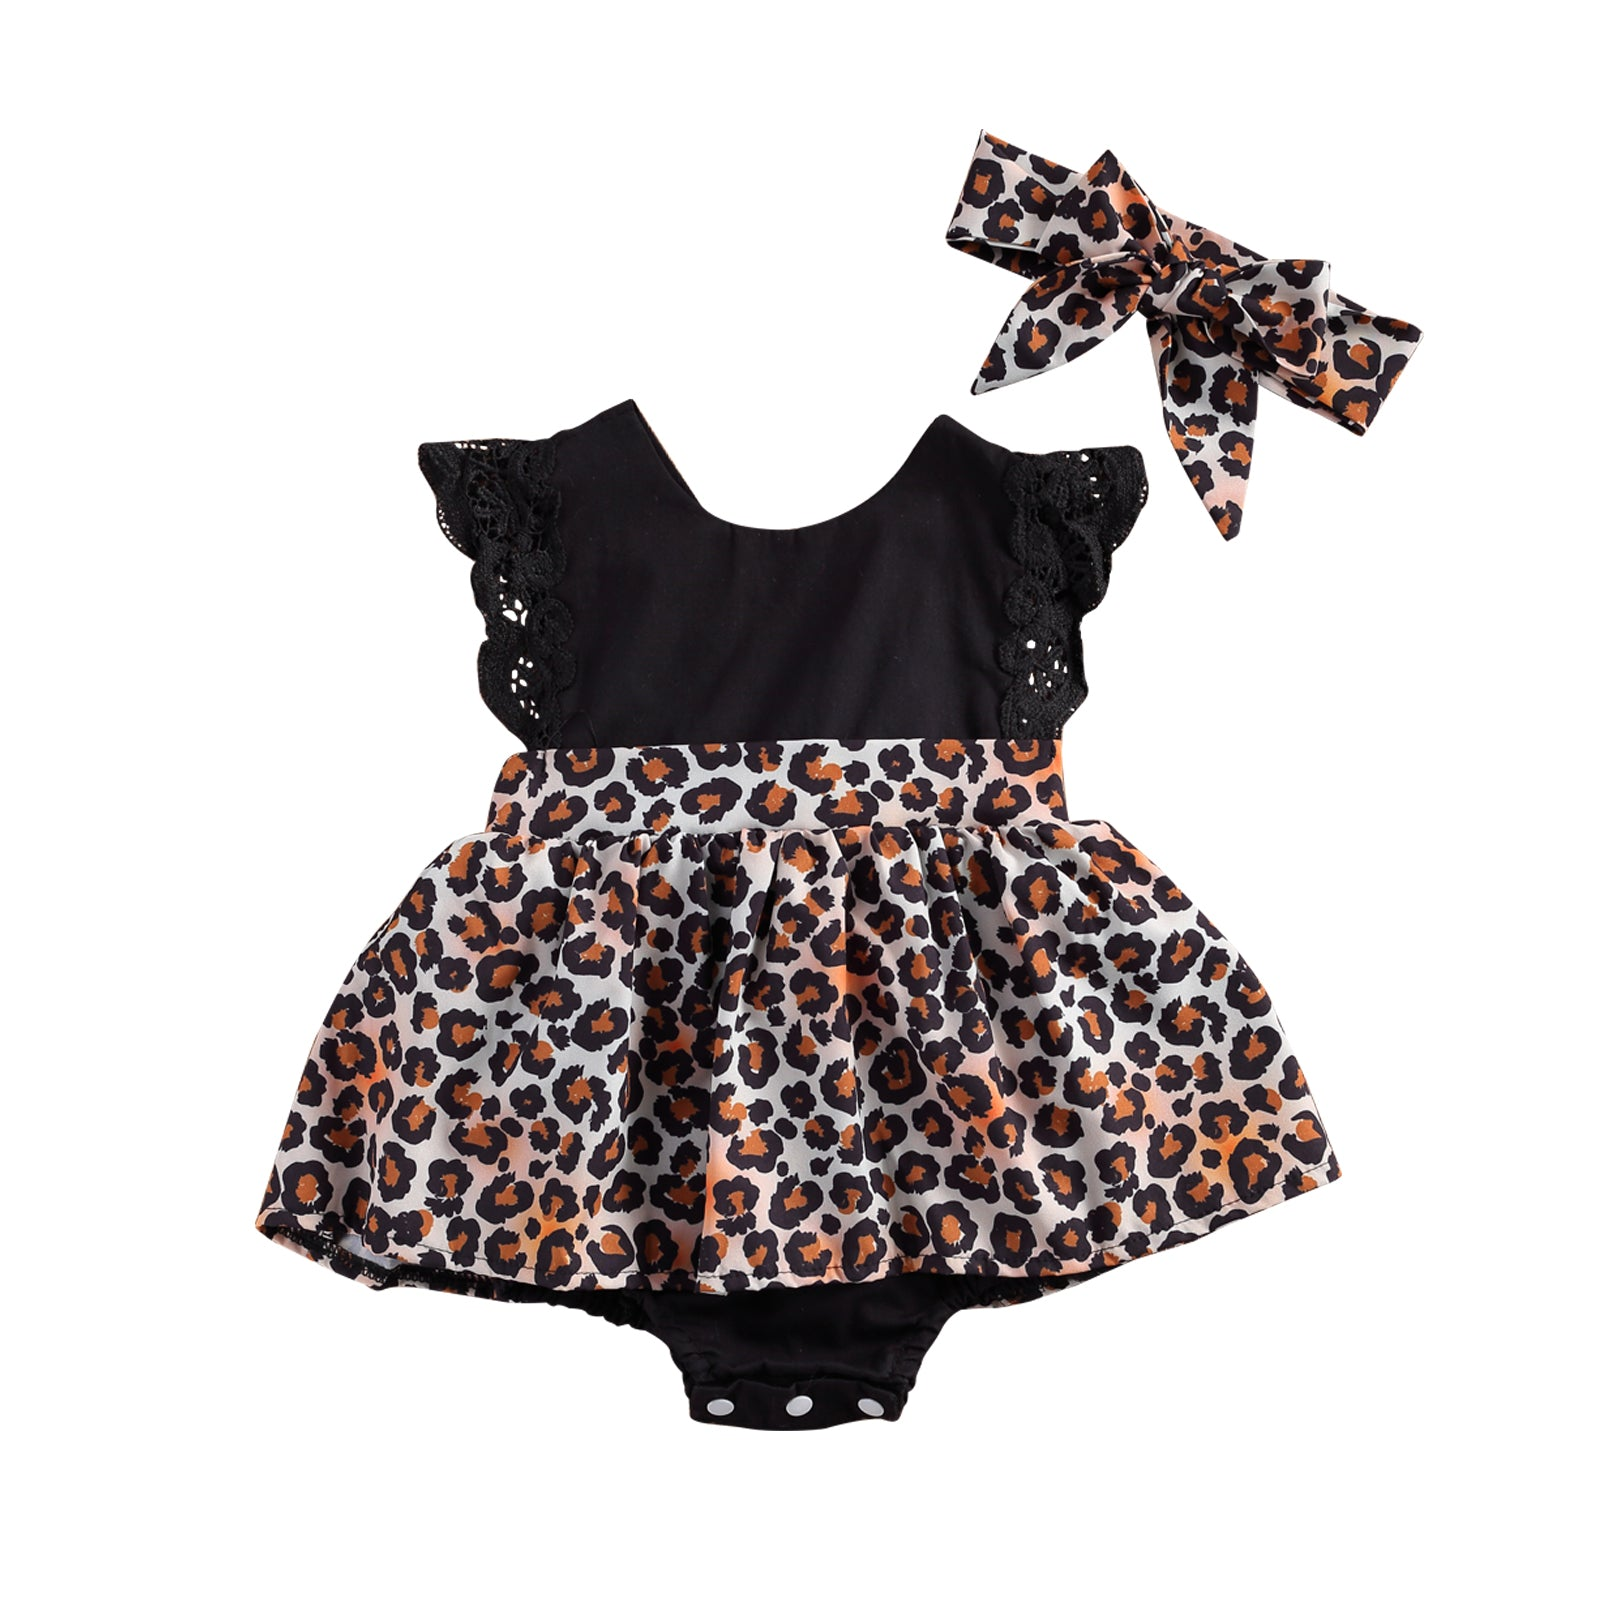 Leopard Romper dress